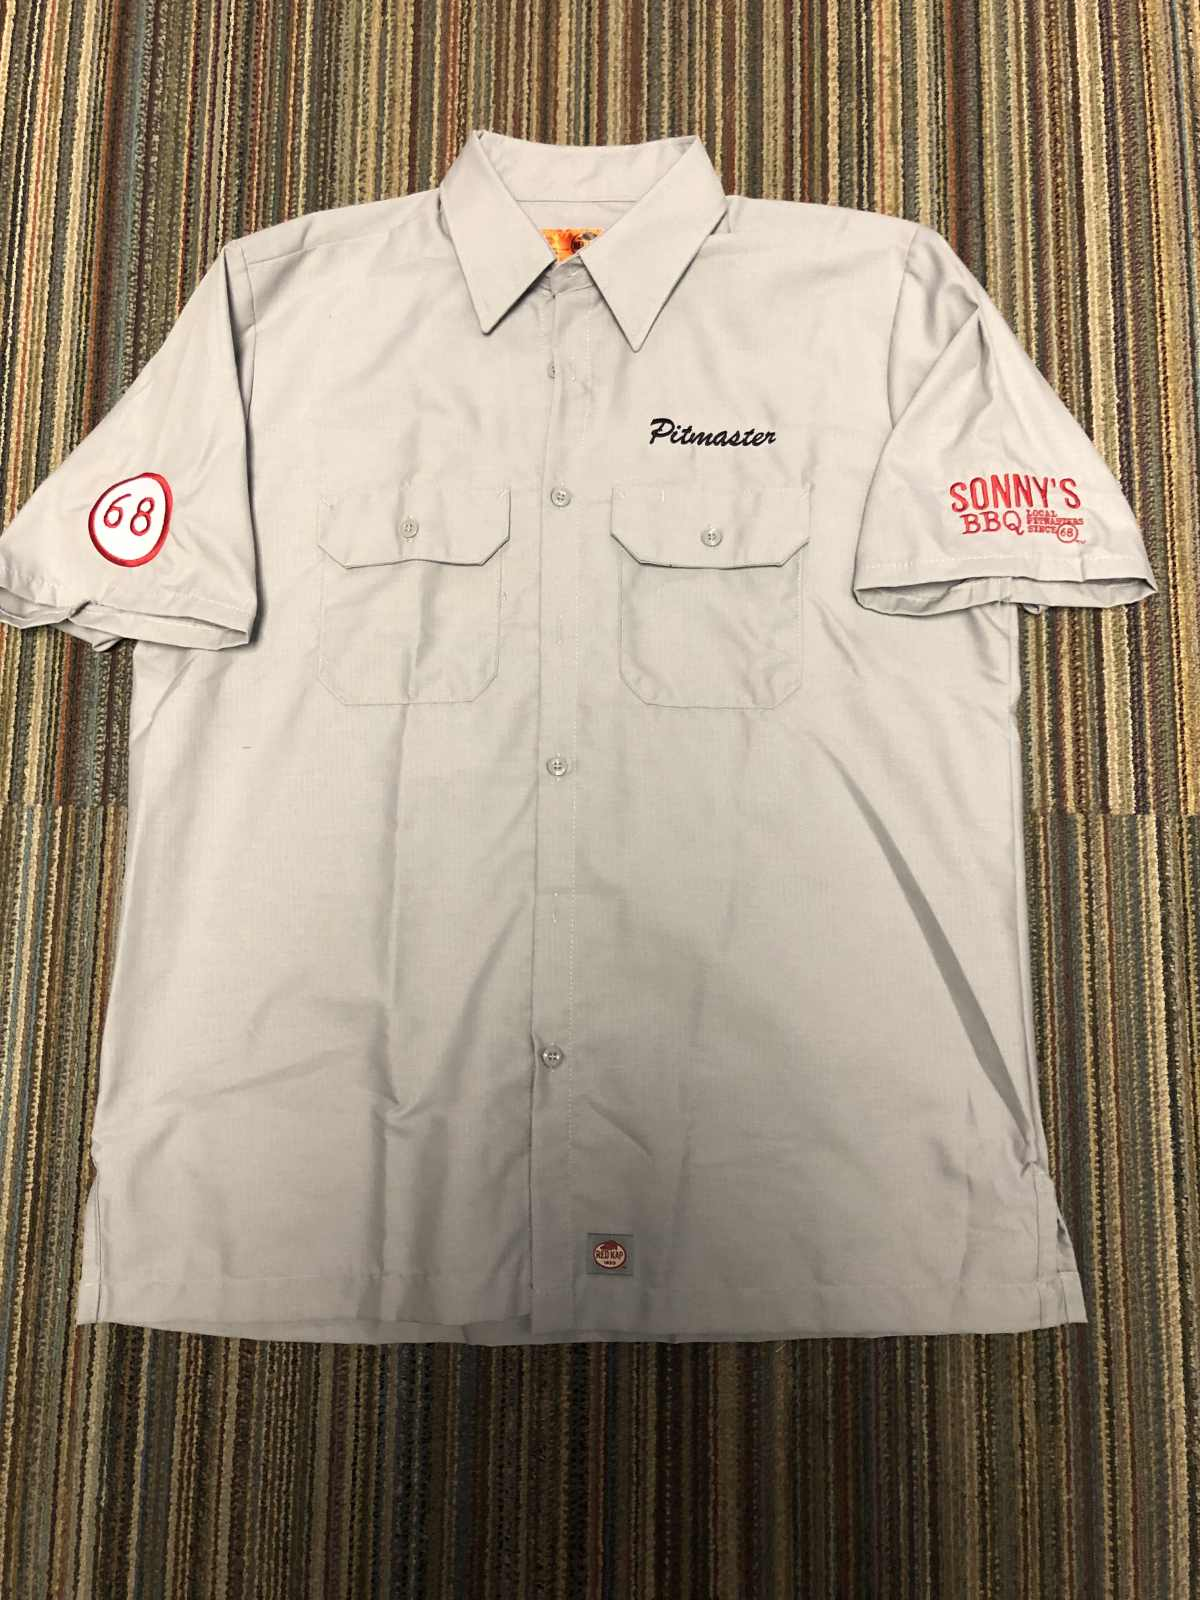 Sonny's – Pitmaster Lightweight Red Kap: Short Sleeve Solid Ripstop Shirt. SY60 – Grey & Black